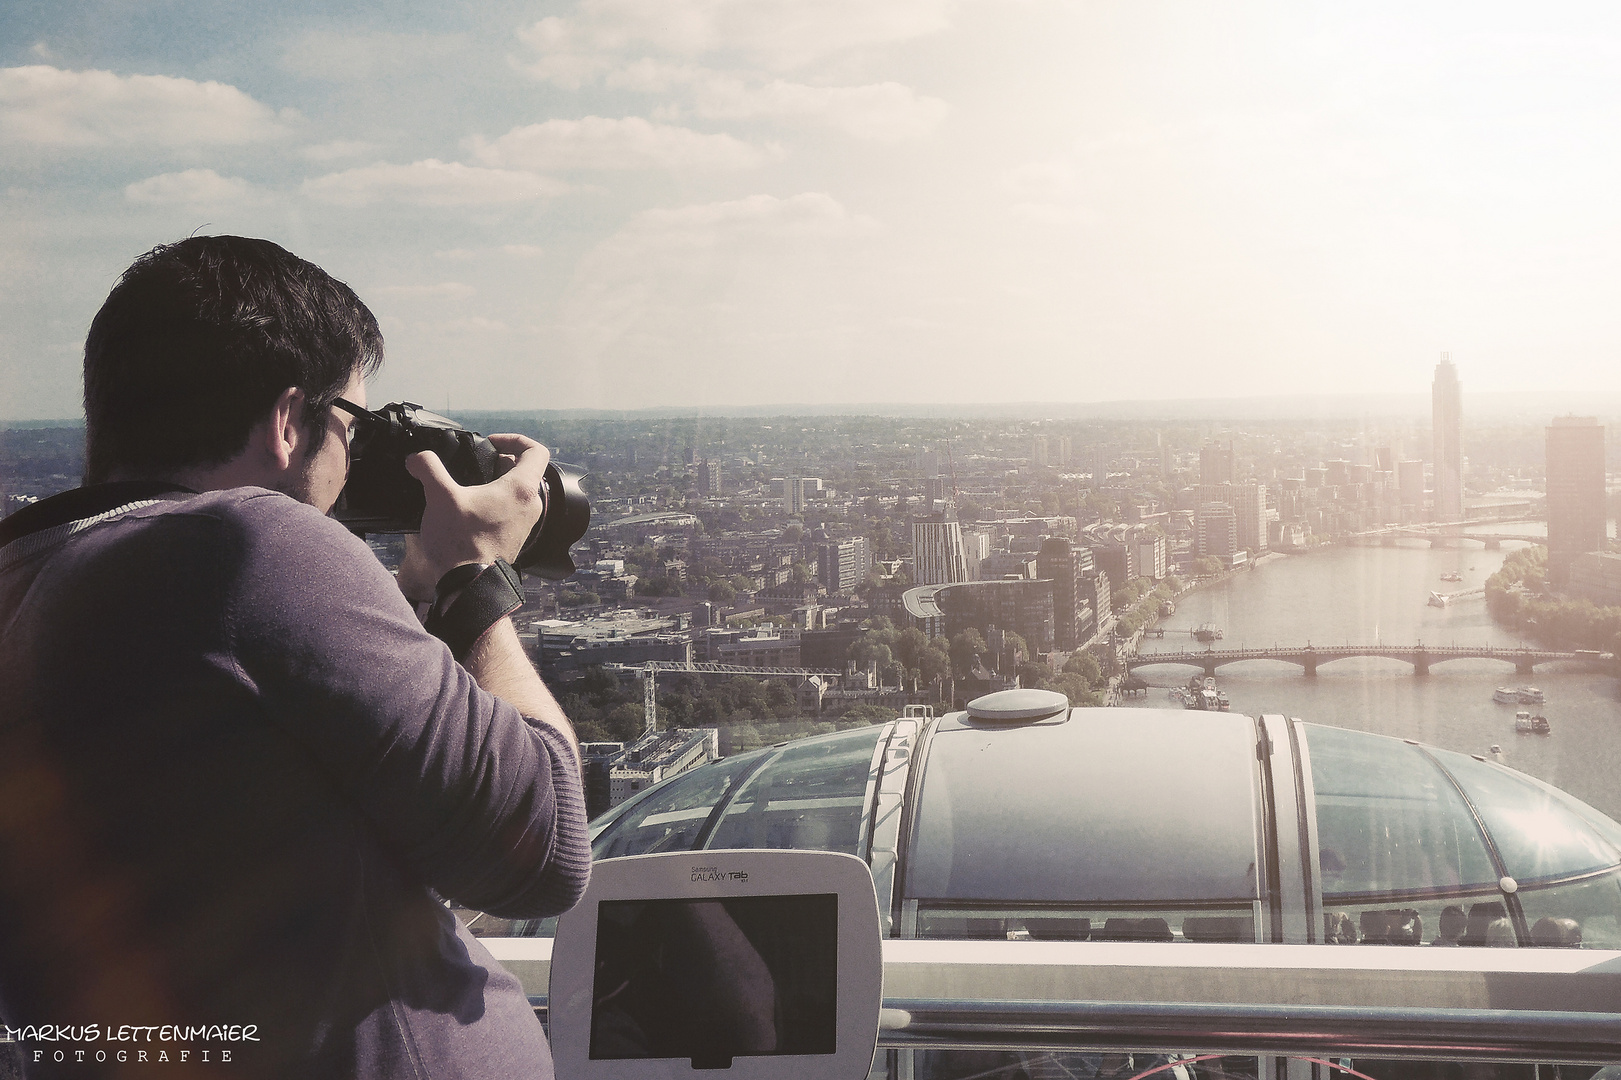 Shooting from the London Eye